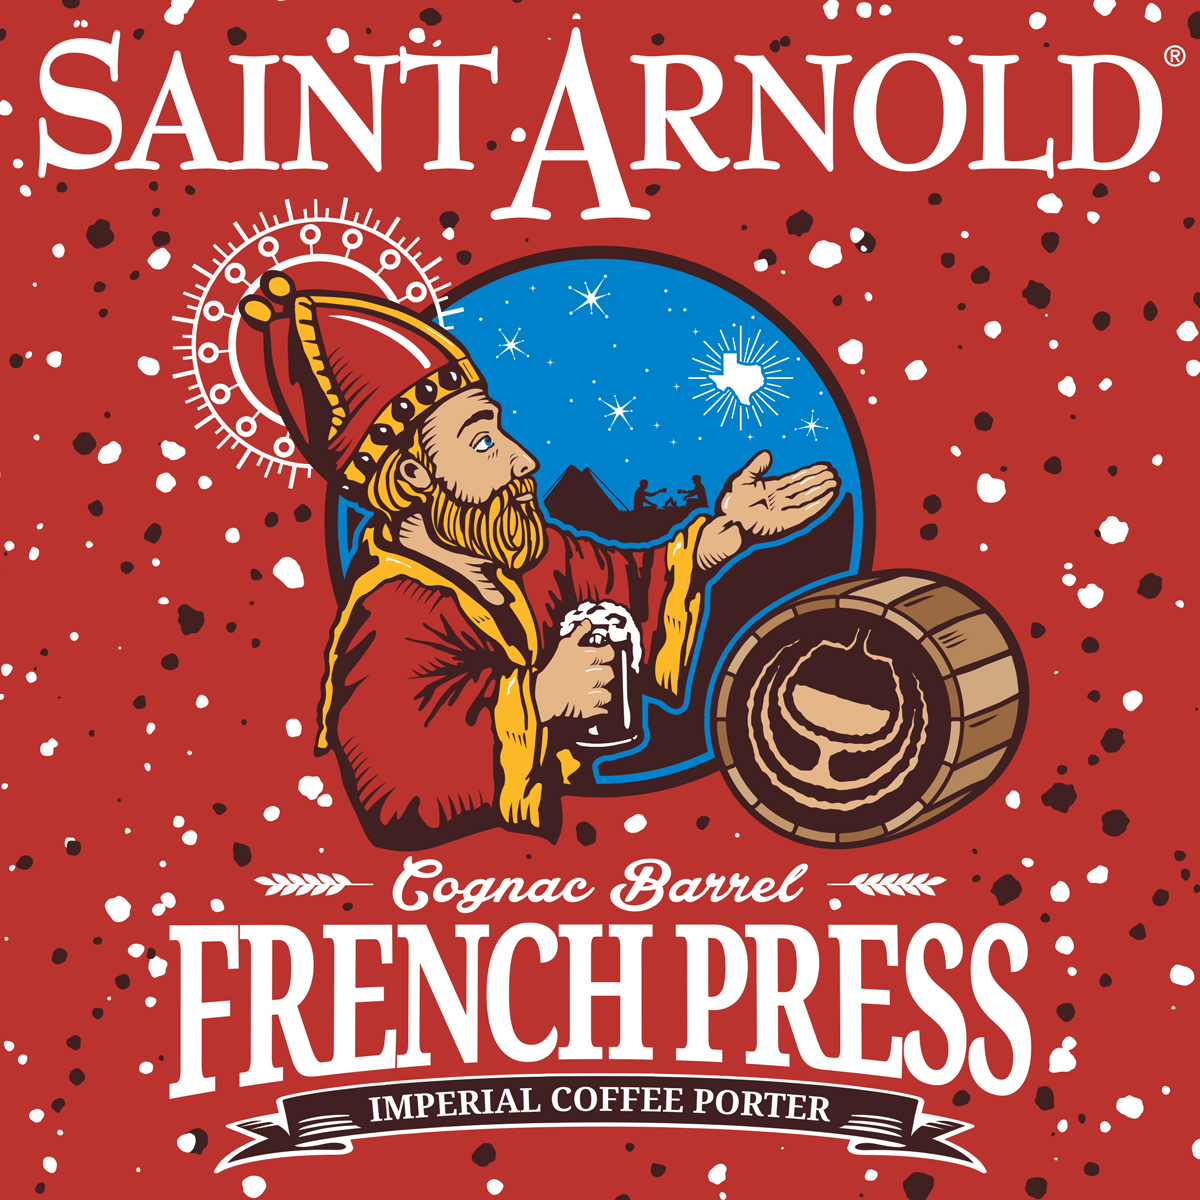 brand_image_cognac_barrel_french_press